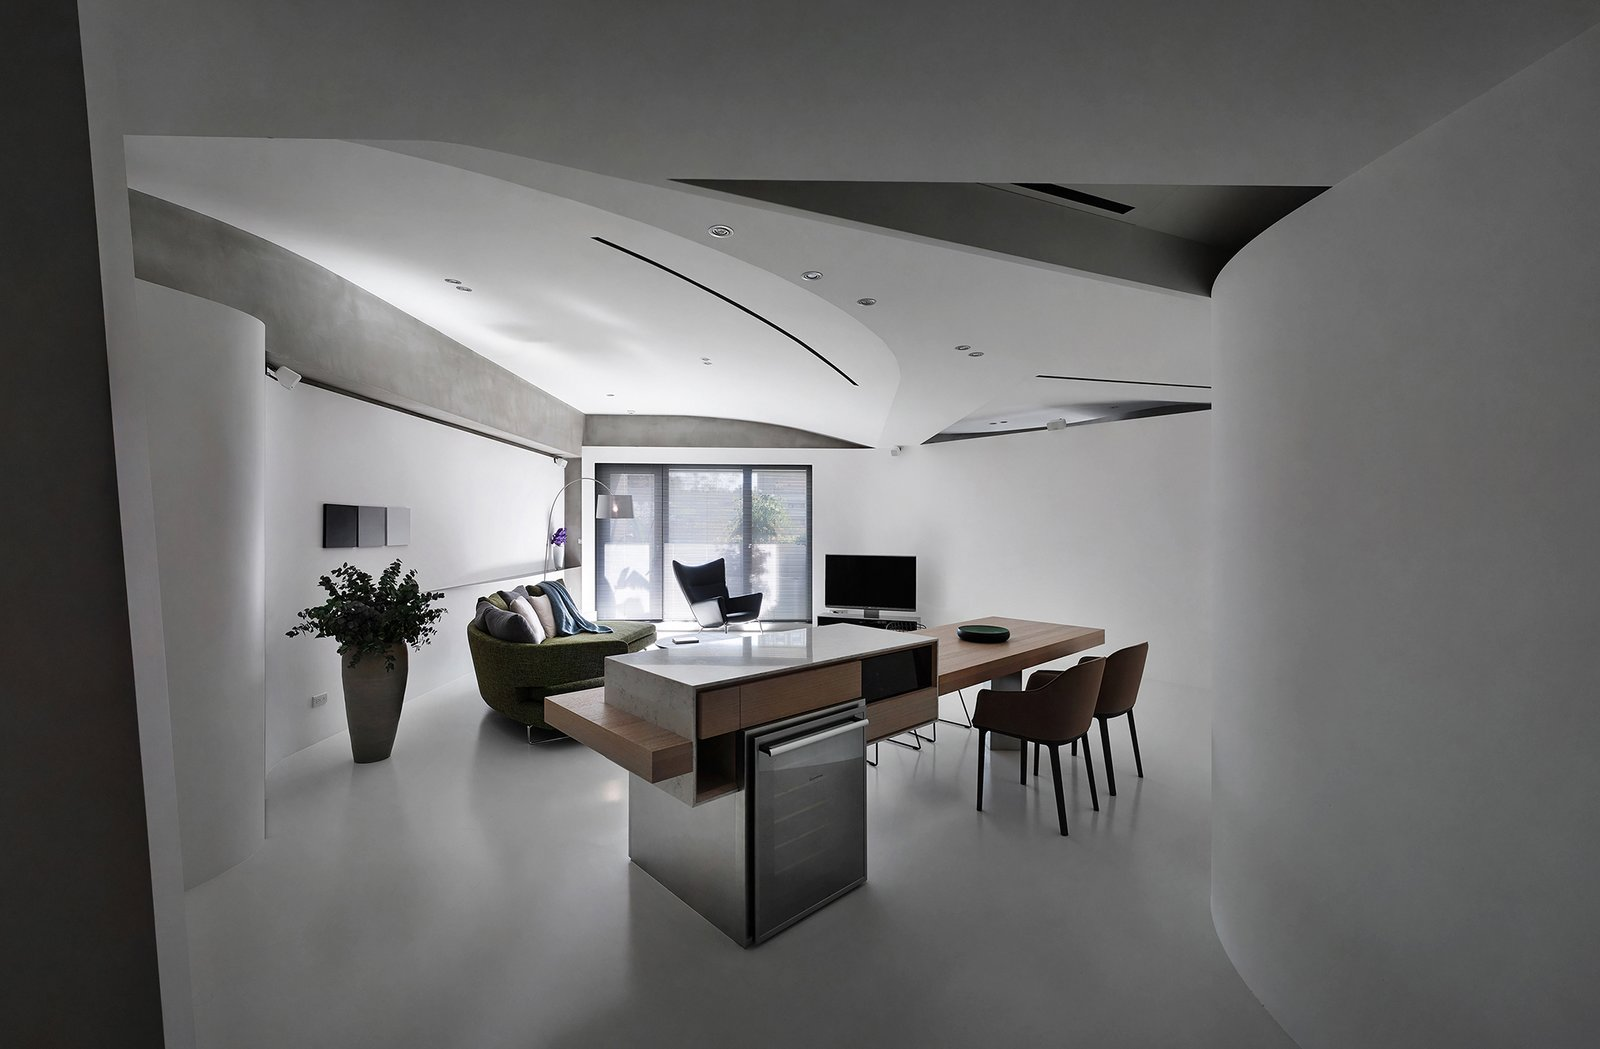 When entering the house, one could easily perceive its fluidity at the first glance. Tagged: Living Room, Bar, Table, Chair, Sofa, Wall Lighting, Ceiling Lighting, Lamps, and Concrete Floor.  Fluid House by shi-chieh lu